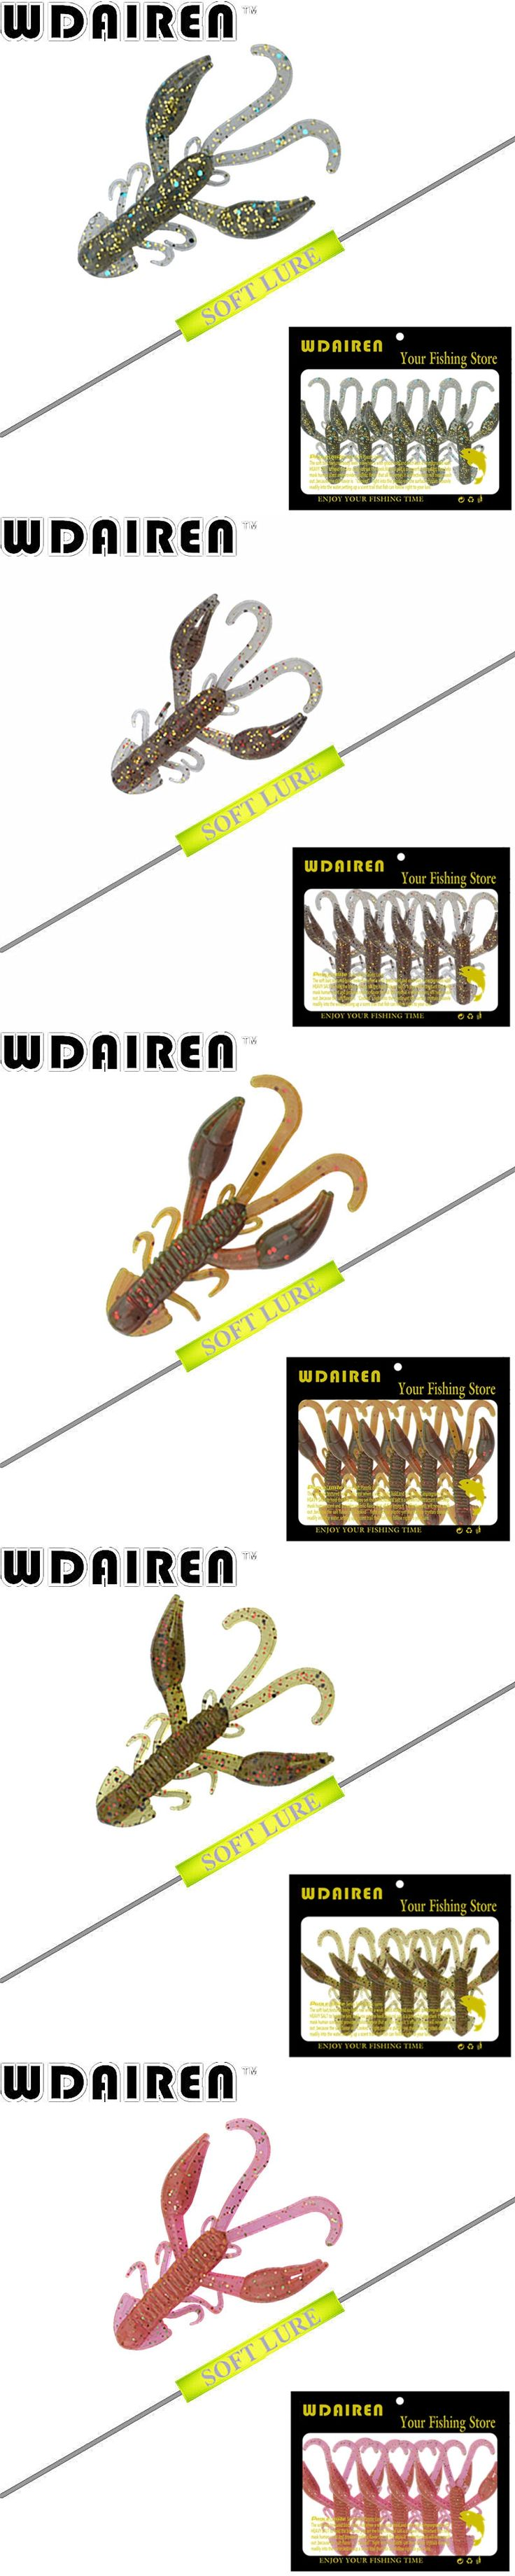 5pcs / lot Soft Silicone Artificial Soft Bait 50mm 2.2g Fishing Lure soft with salt smell Swim Bait Fishing Worm Lure FA-343